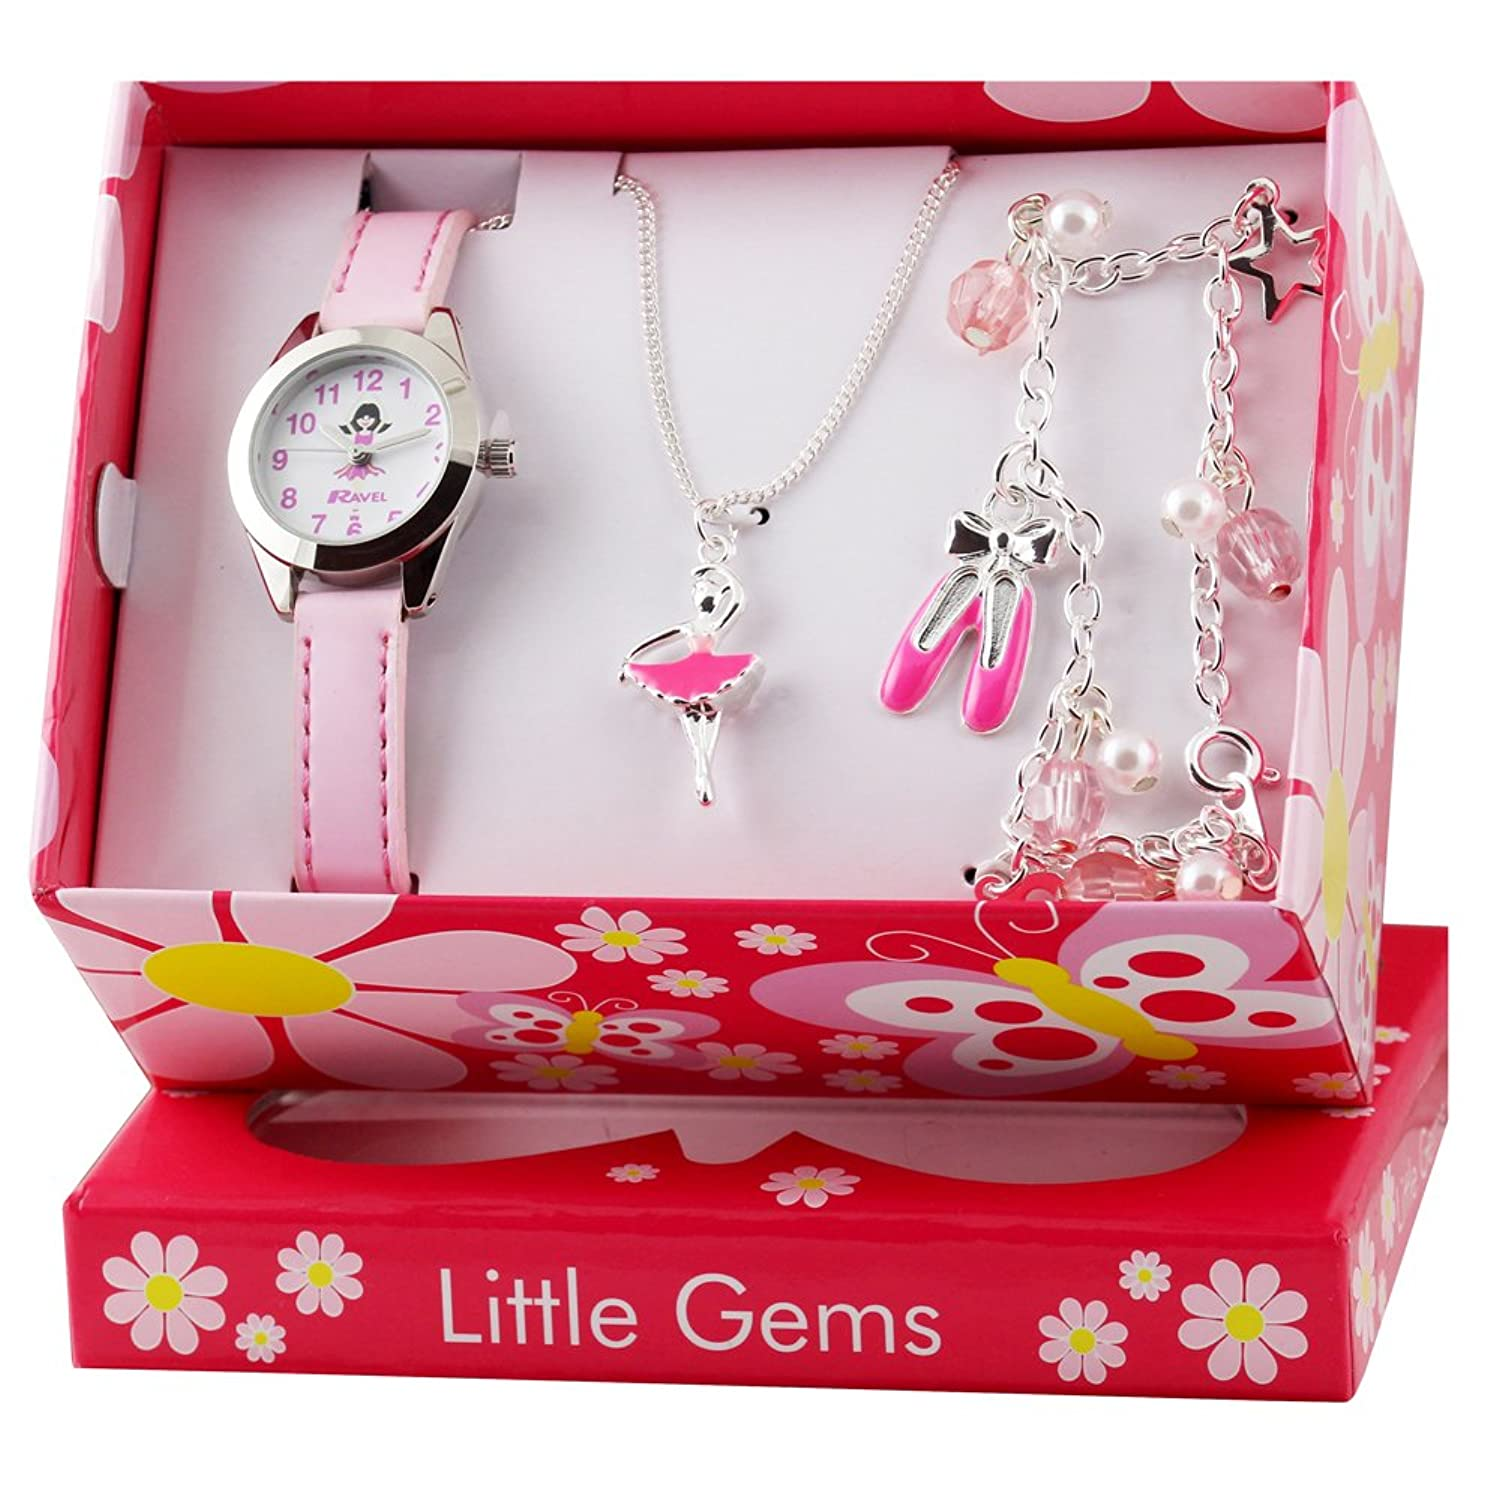 Amazon.com: Watches - Girls: Clothing, Shoes & Jewelry: Wrist ...